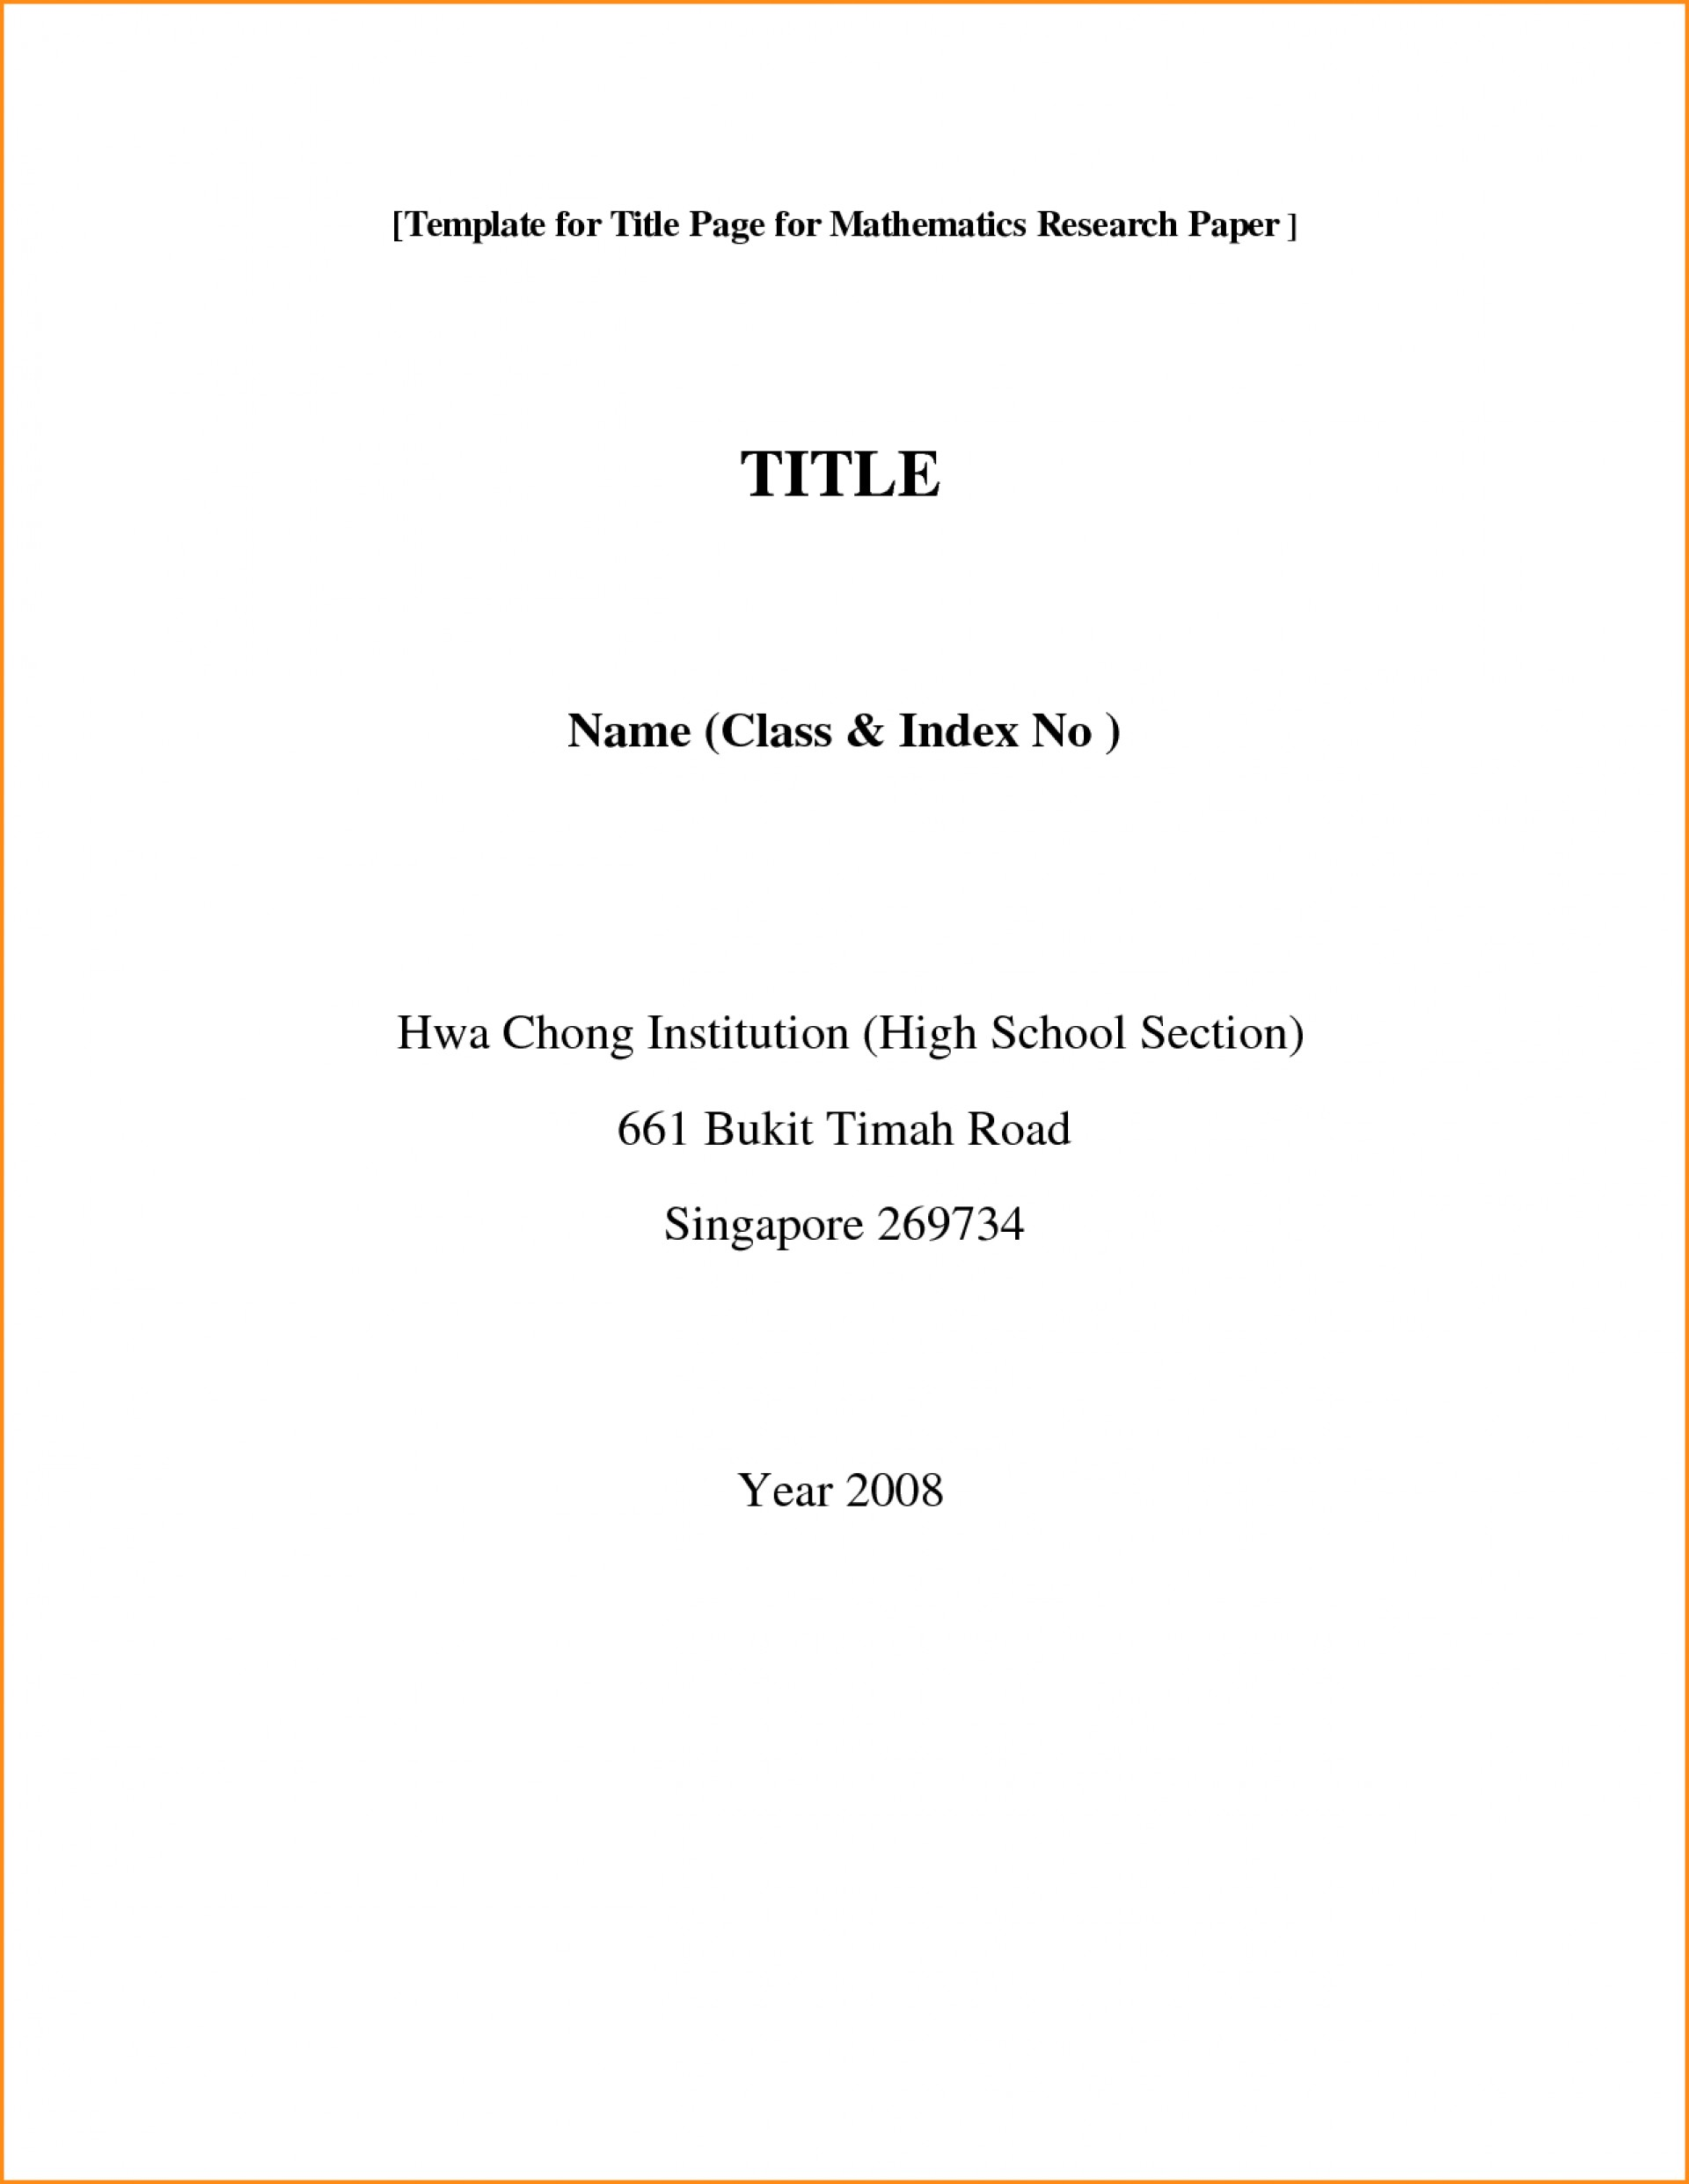 004 What Is Cover Page For An Essay Front Of Research Paper Format Awesome A Does 2 Look Like Two Should I Put On 1920